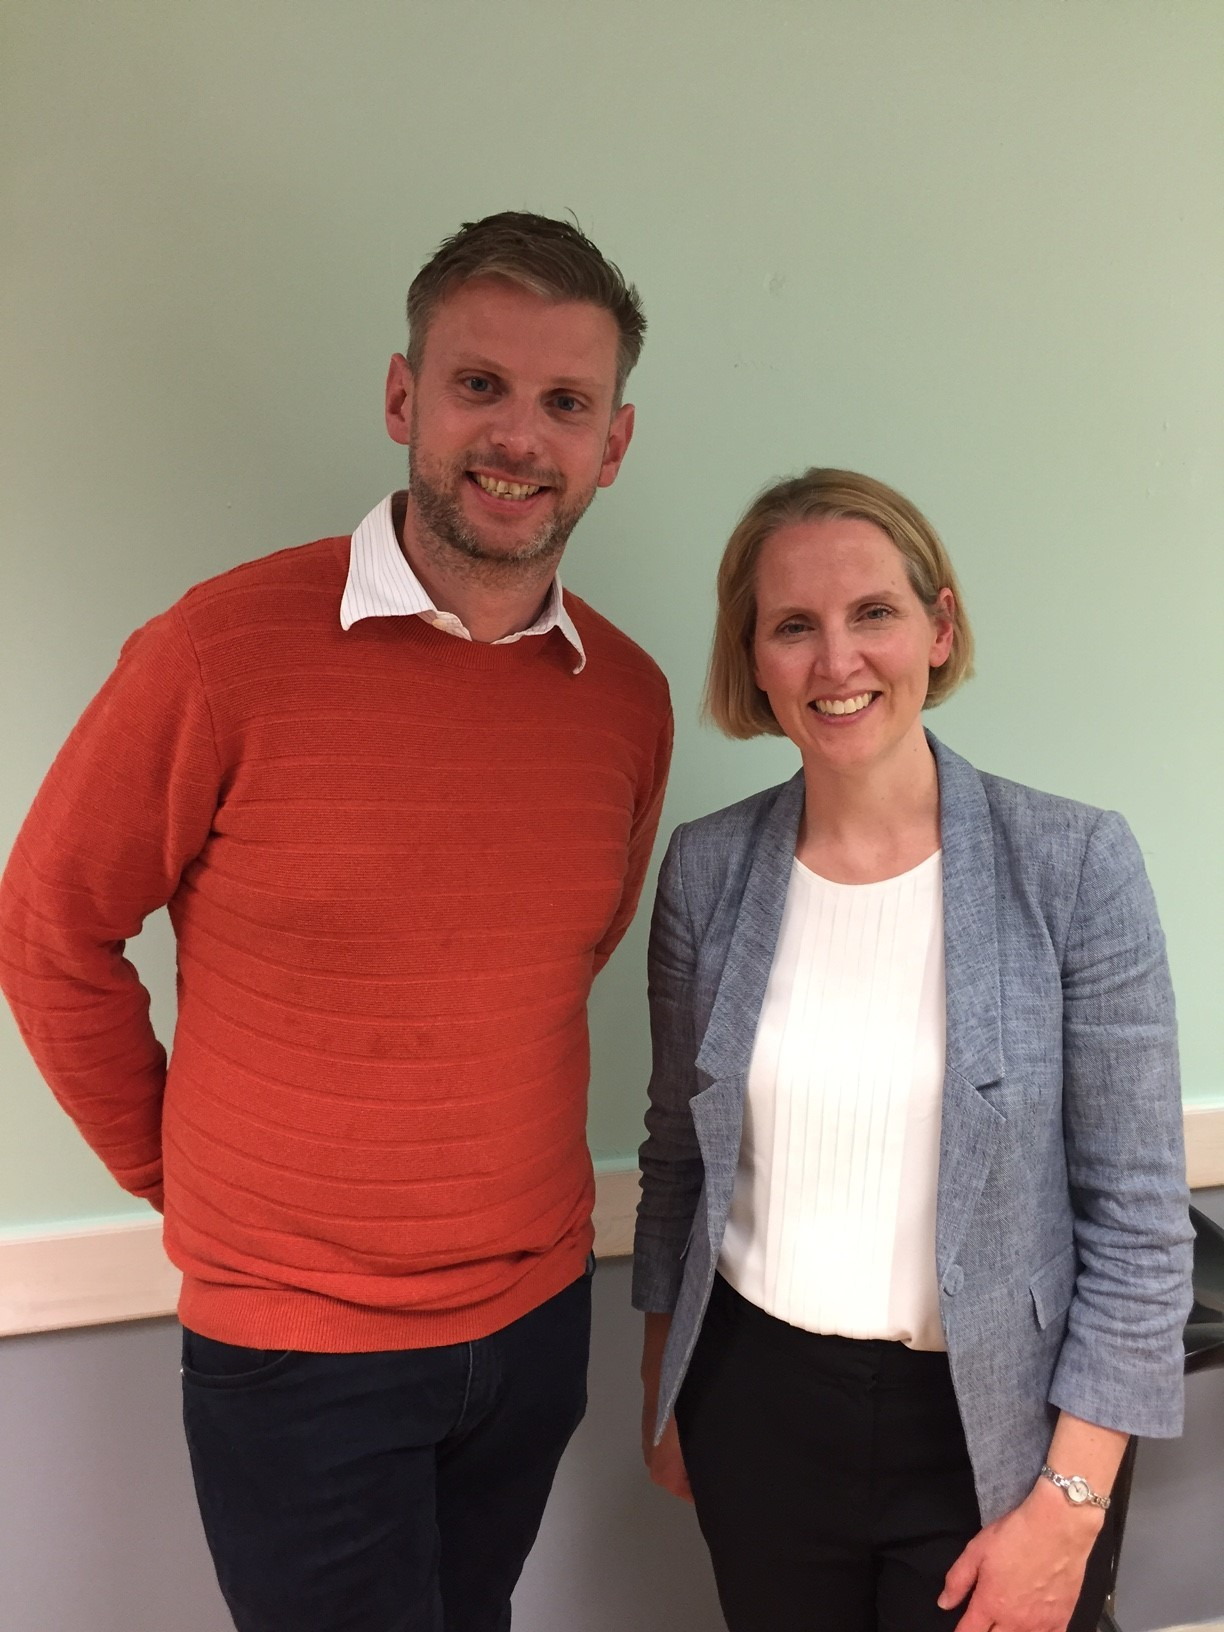 Emma Reynolds MP with Bromsgrove councillor Luke Mallett